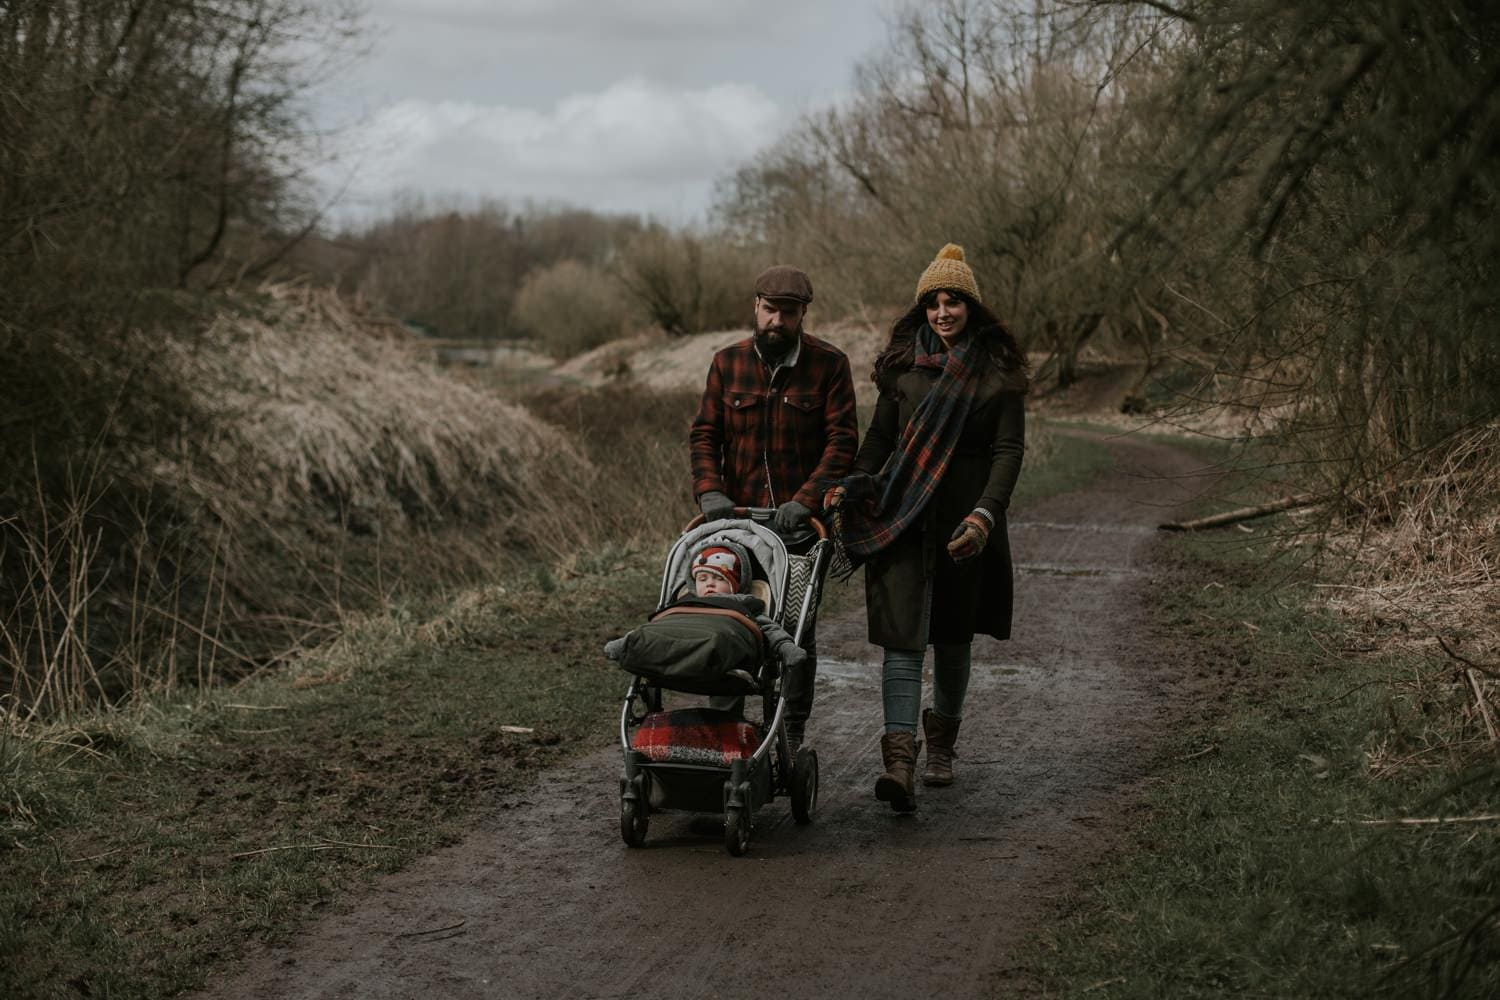 Family walking in the countryside in Manchester